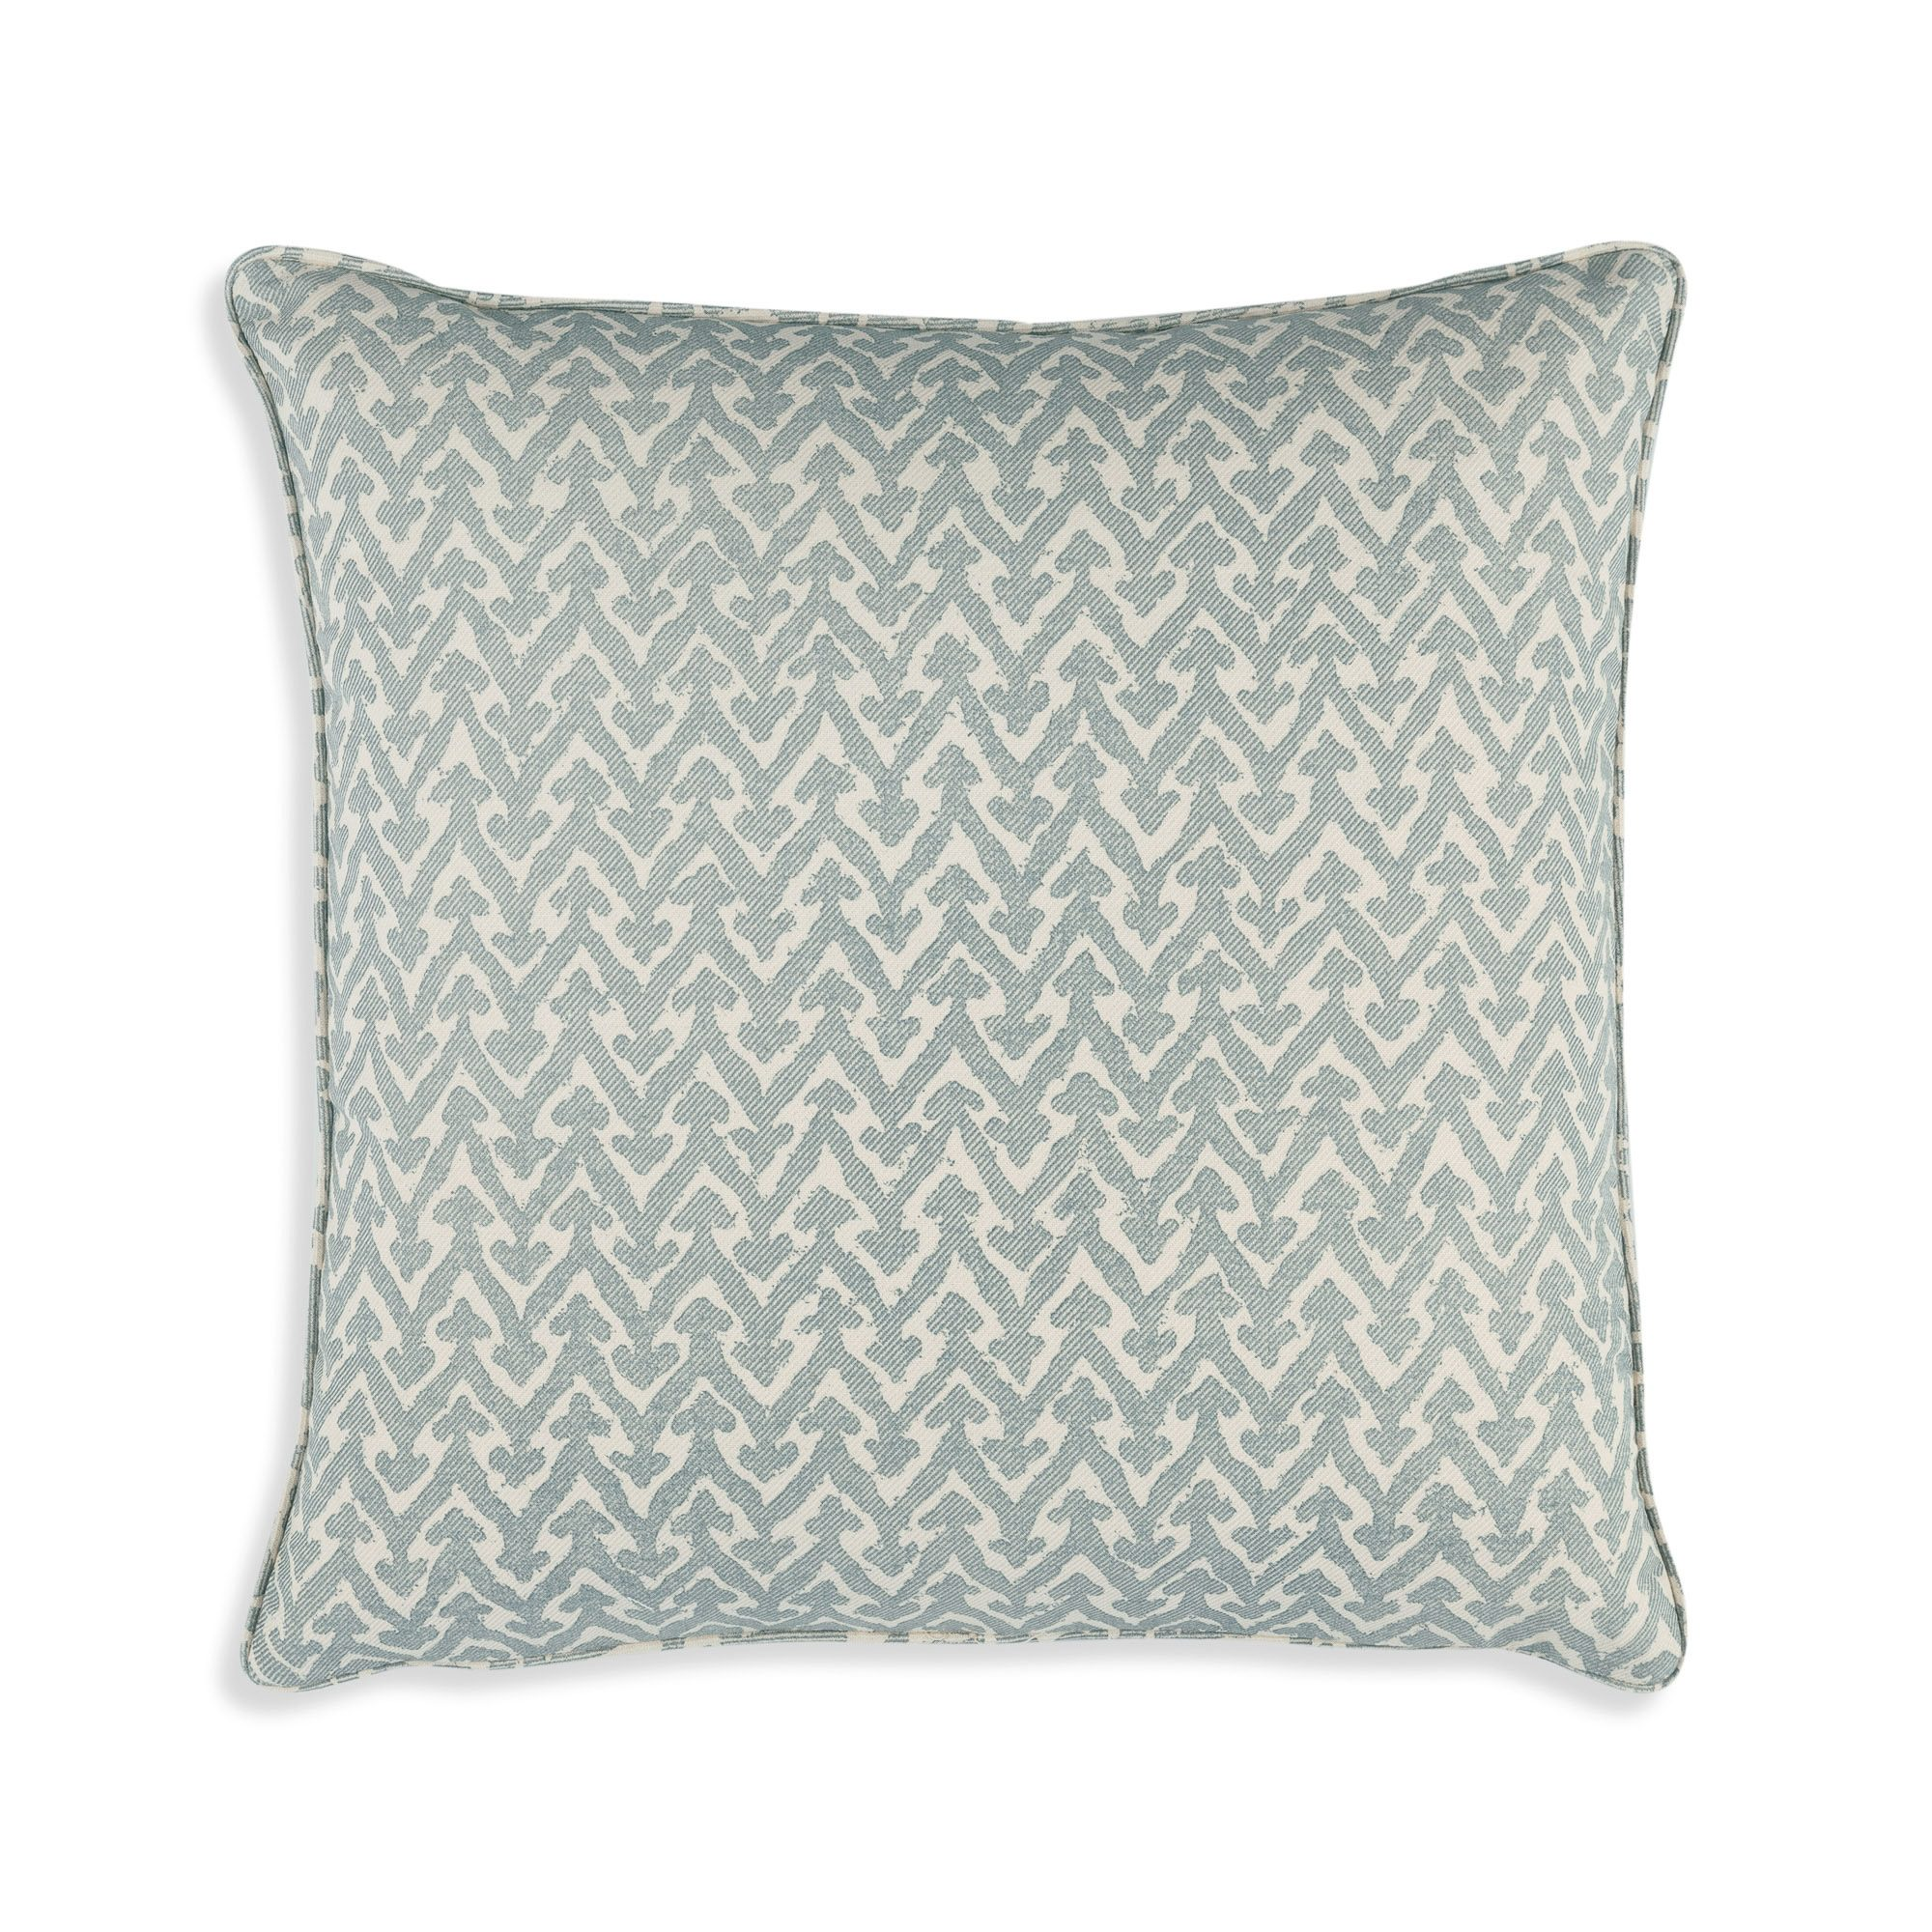 Small Square Cushion in Light Blue Rabanna